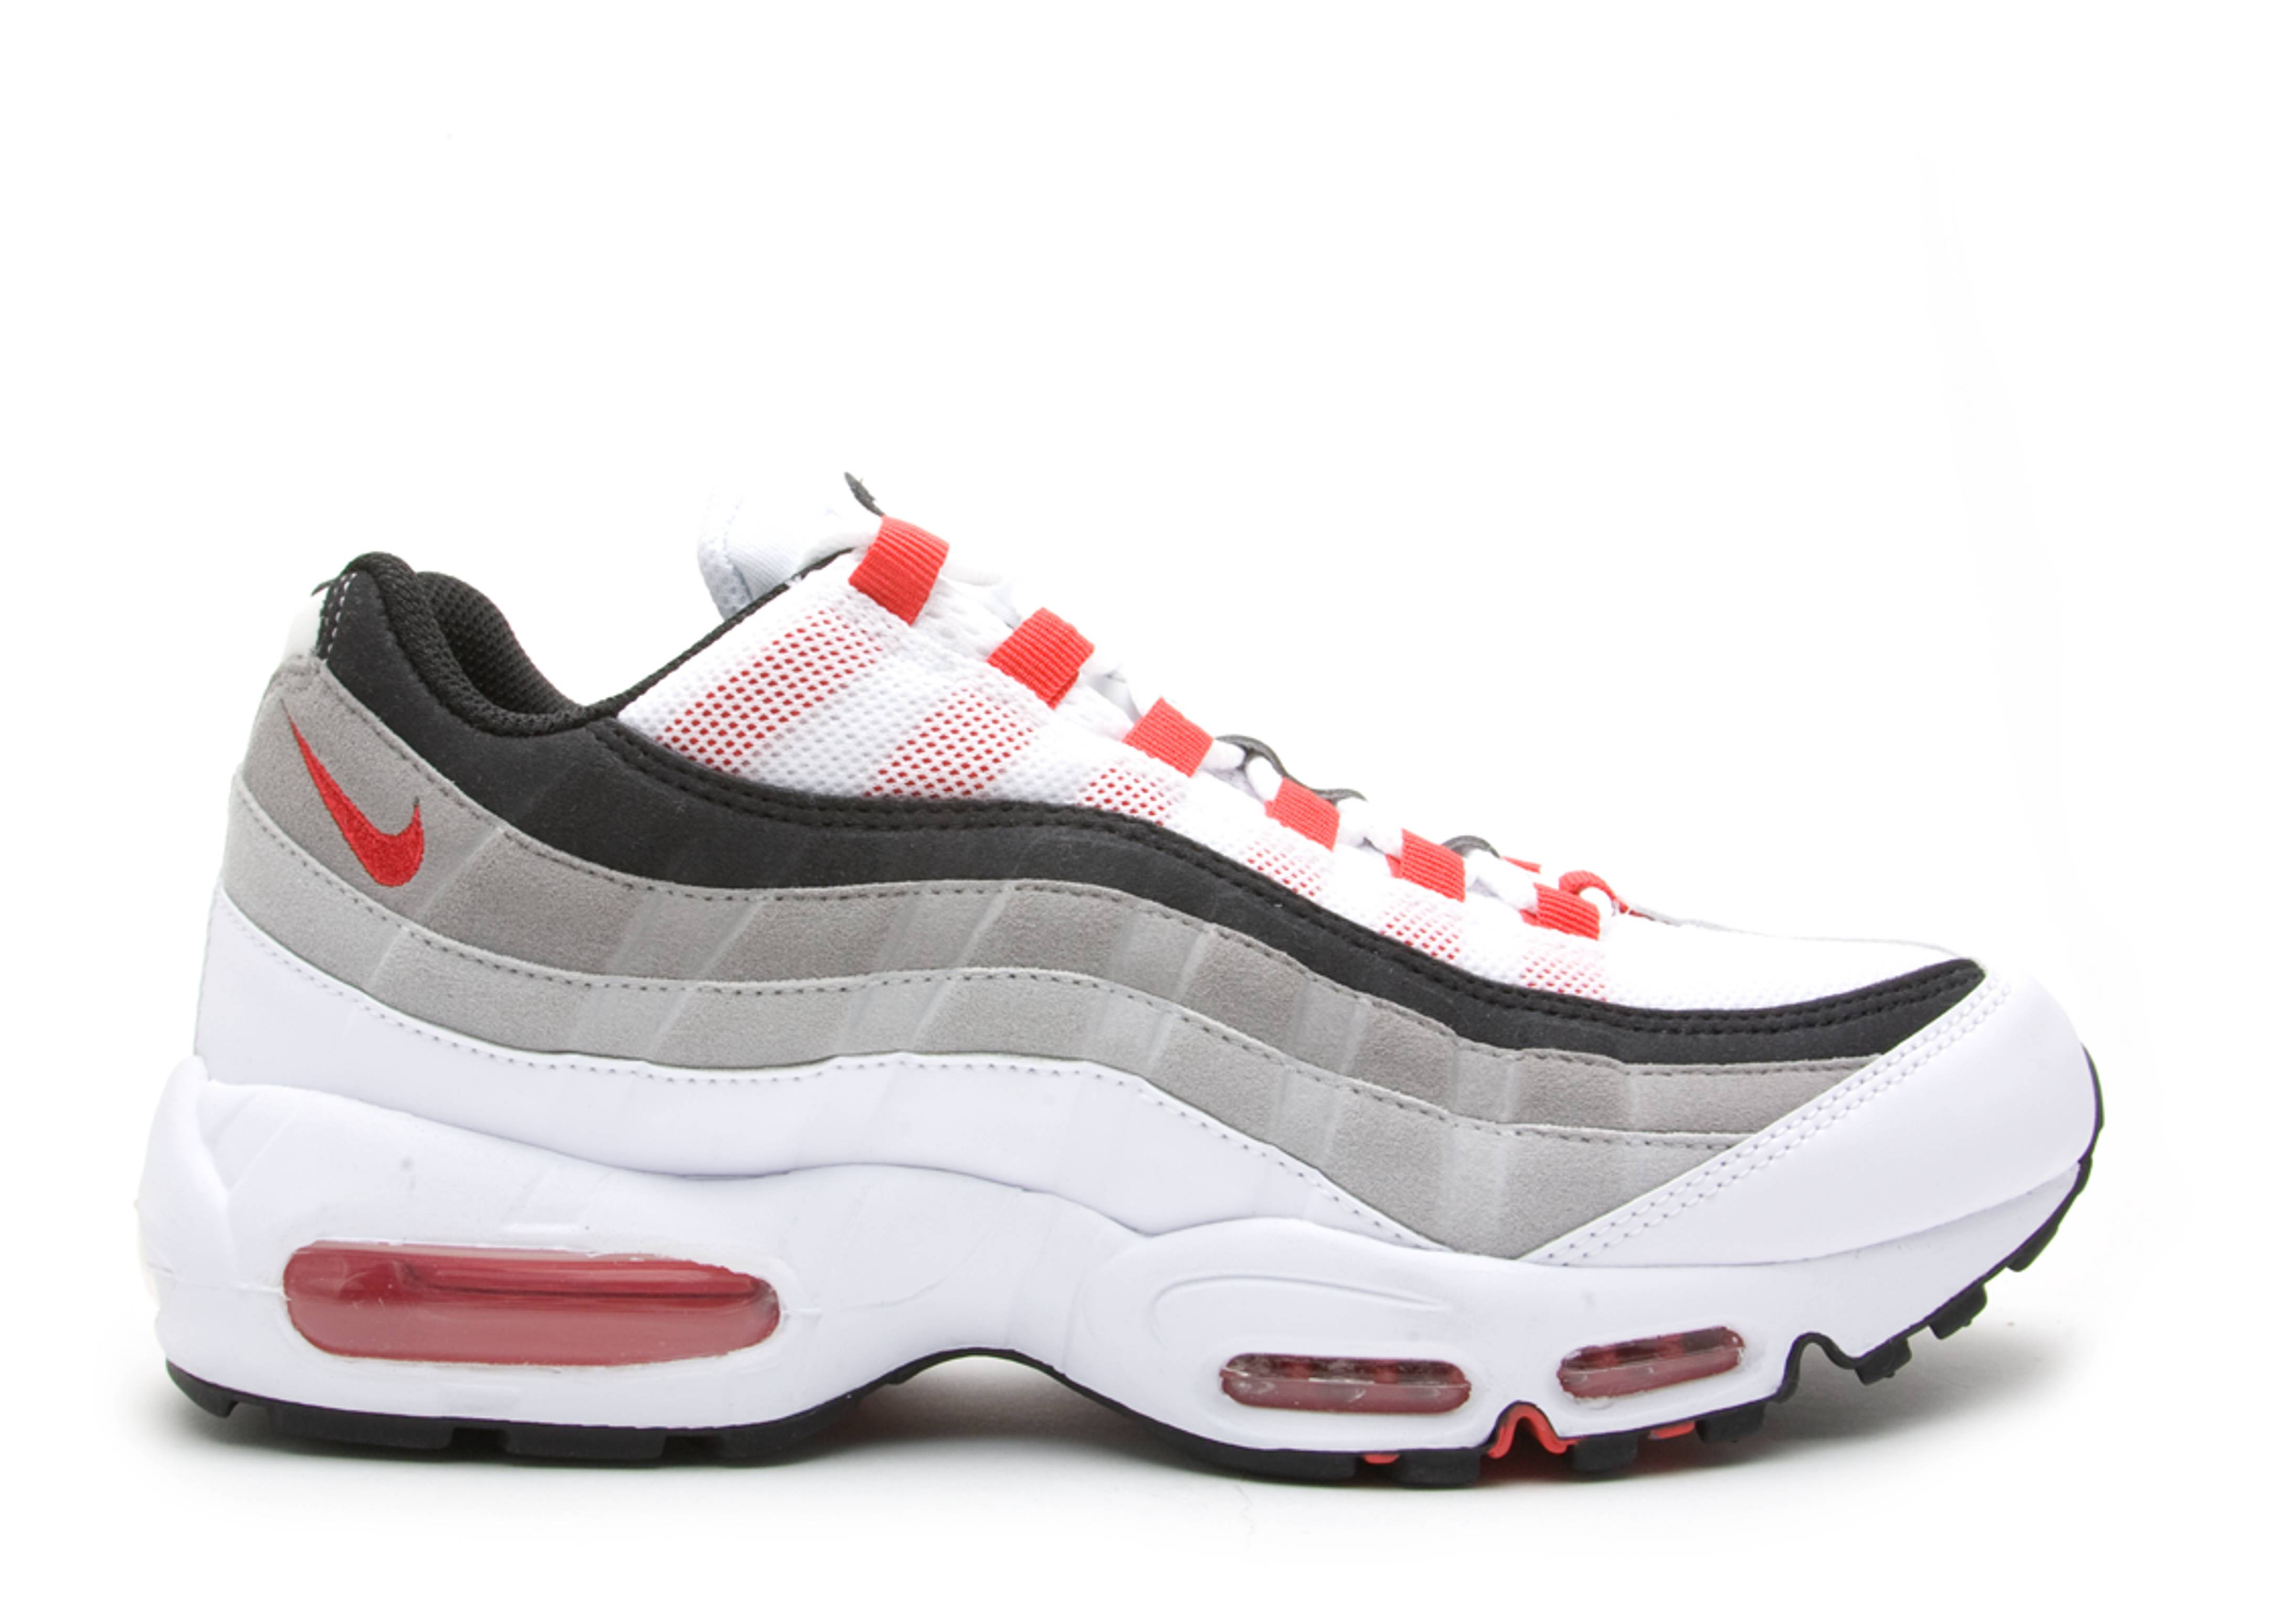 detailed look 215fc ddb61 Air Max 95 - Nike - 609048 100 - white cmt red-ntrl gry-mdm gry ...